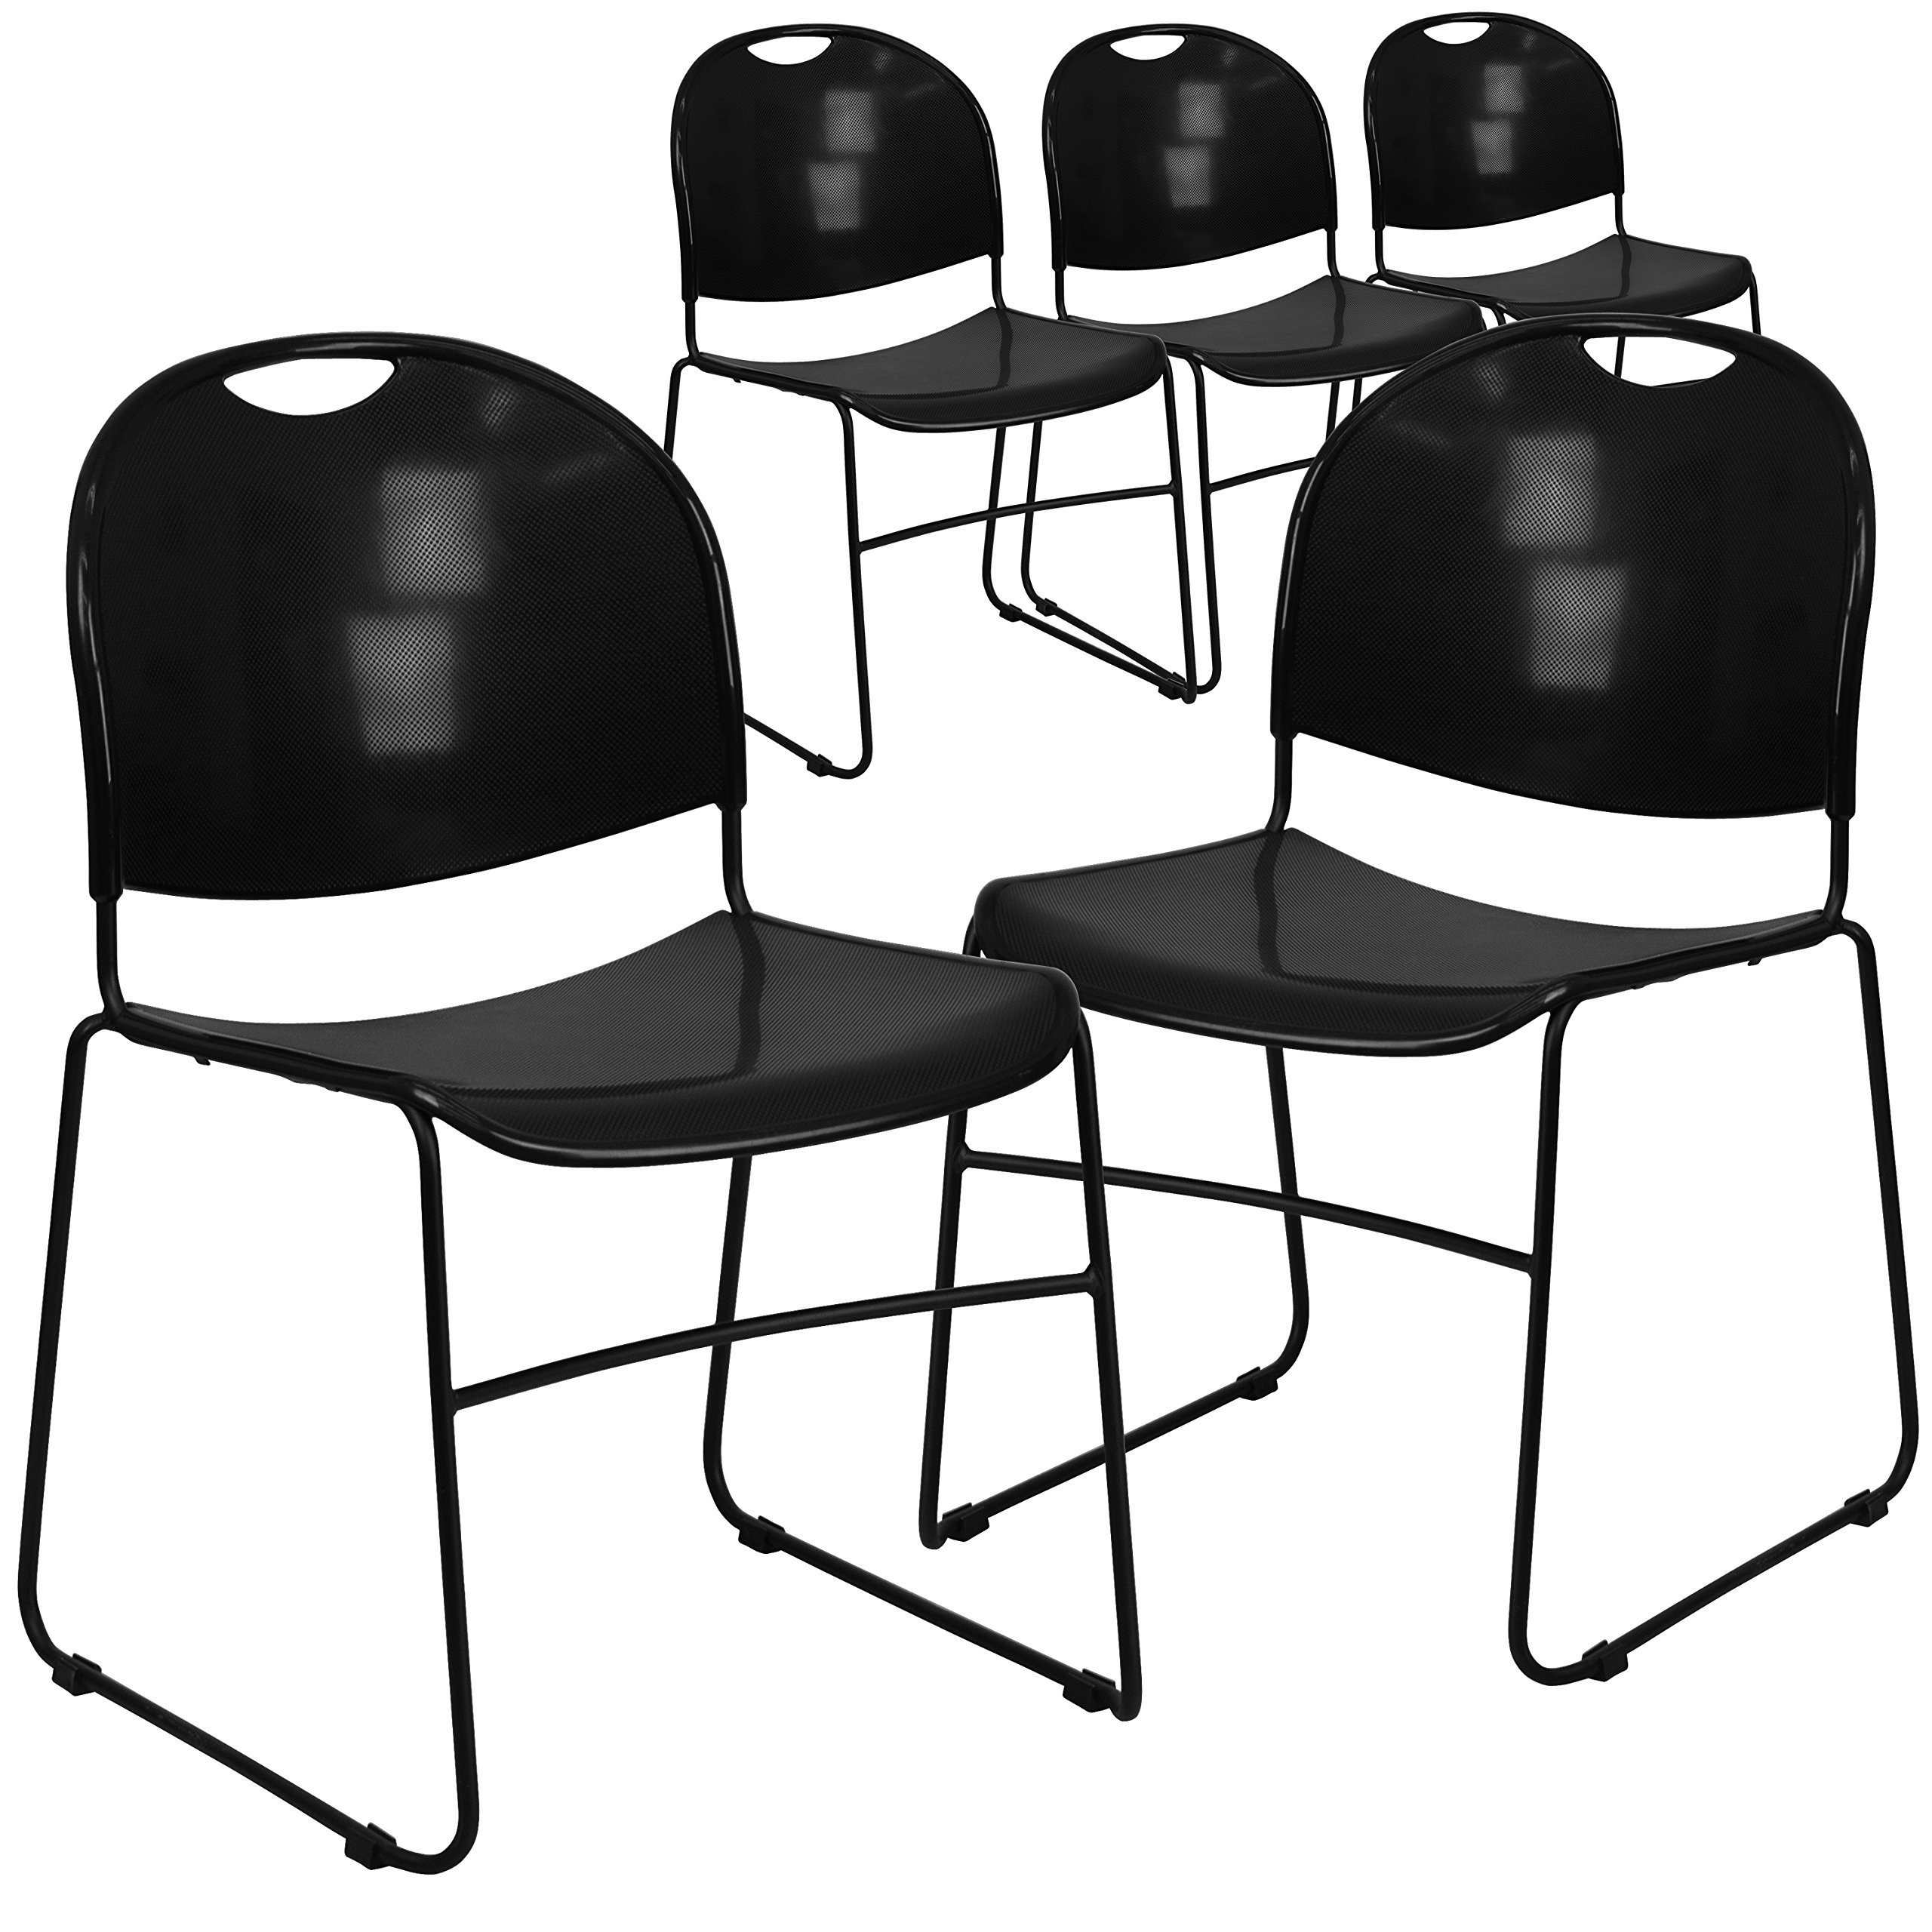 Flash Furniture 5 Pk. HERCULES Series 880 lb. Capacity Black Ultra-Compact Stack Chair with Black Frame by Flash Furniture